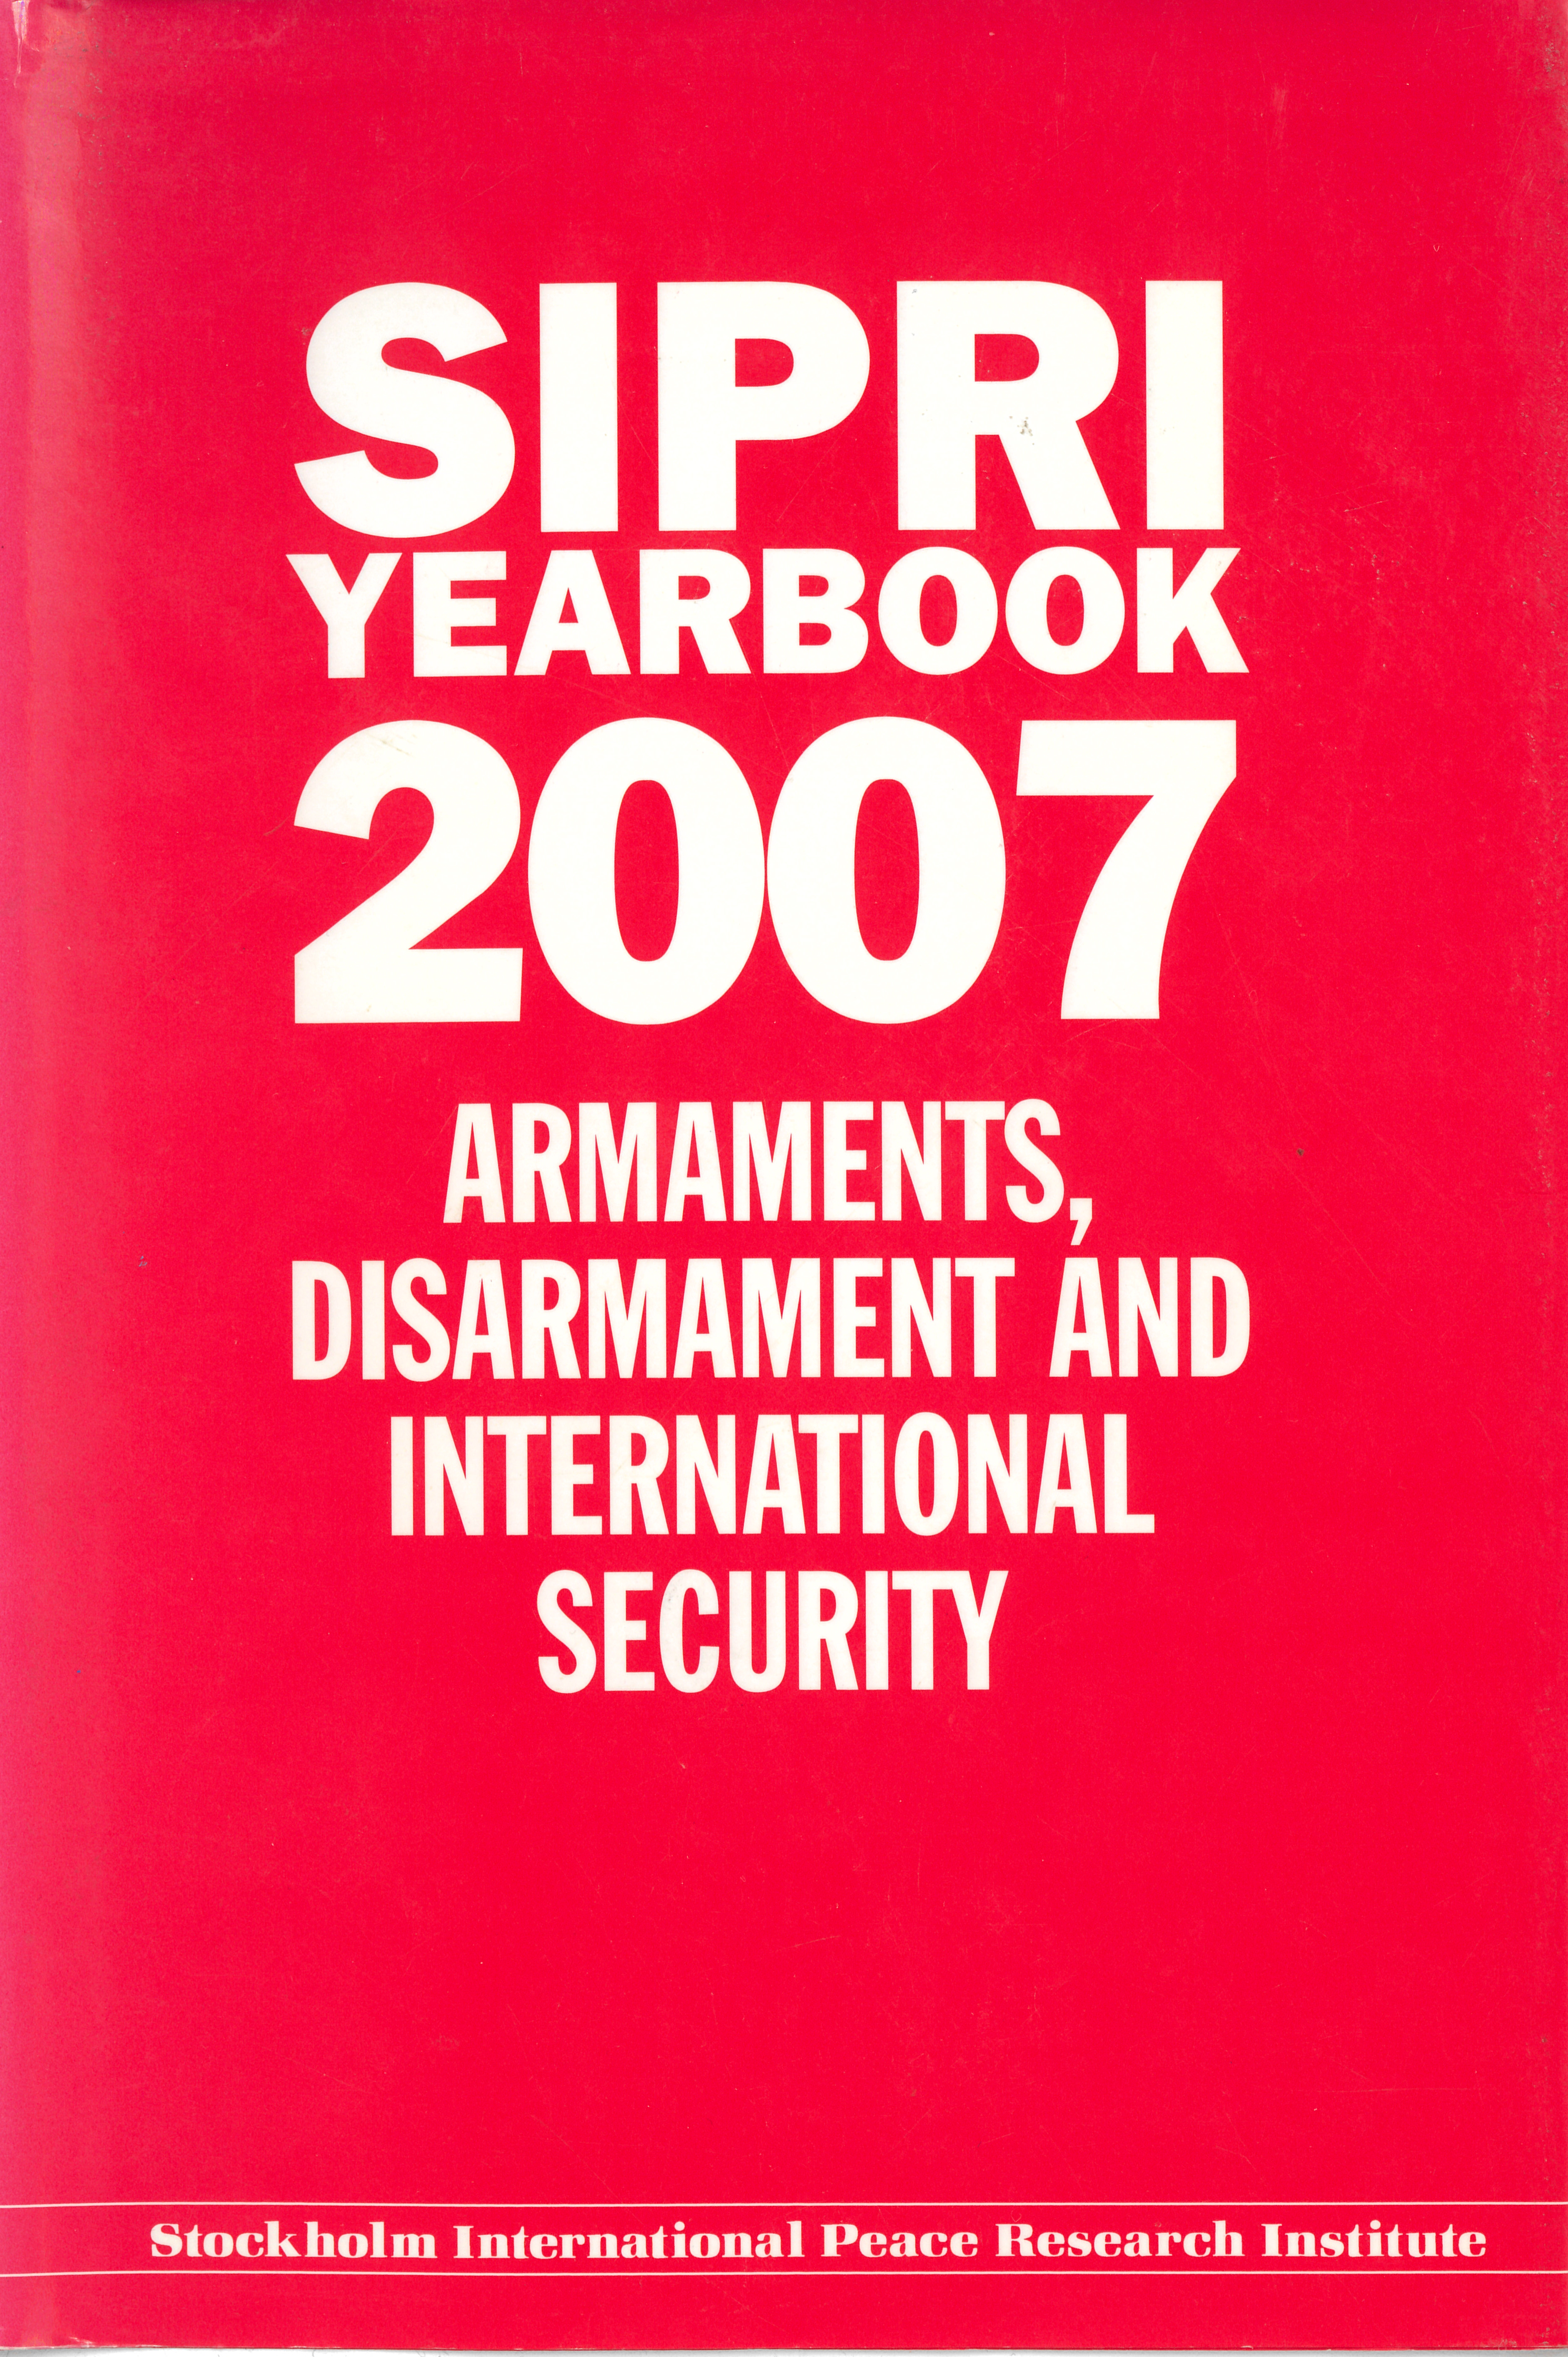 SIPRI yearbook 2007 cover